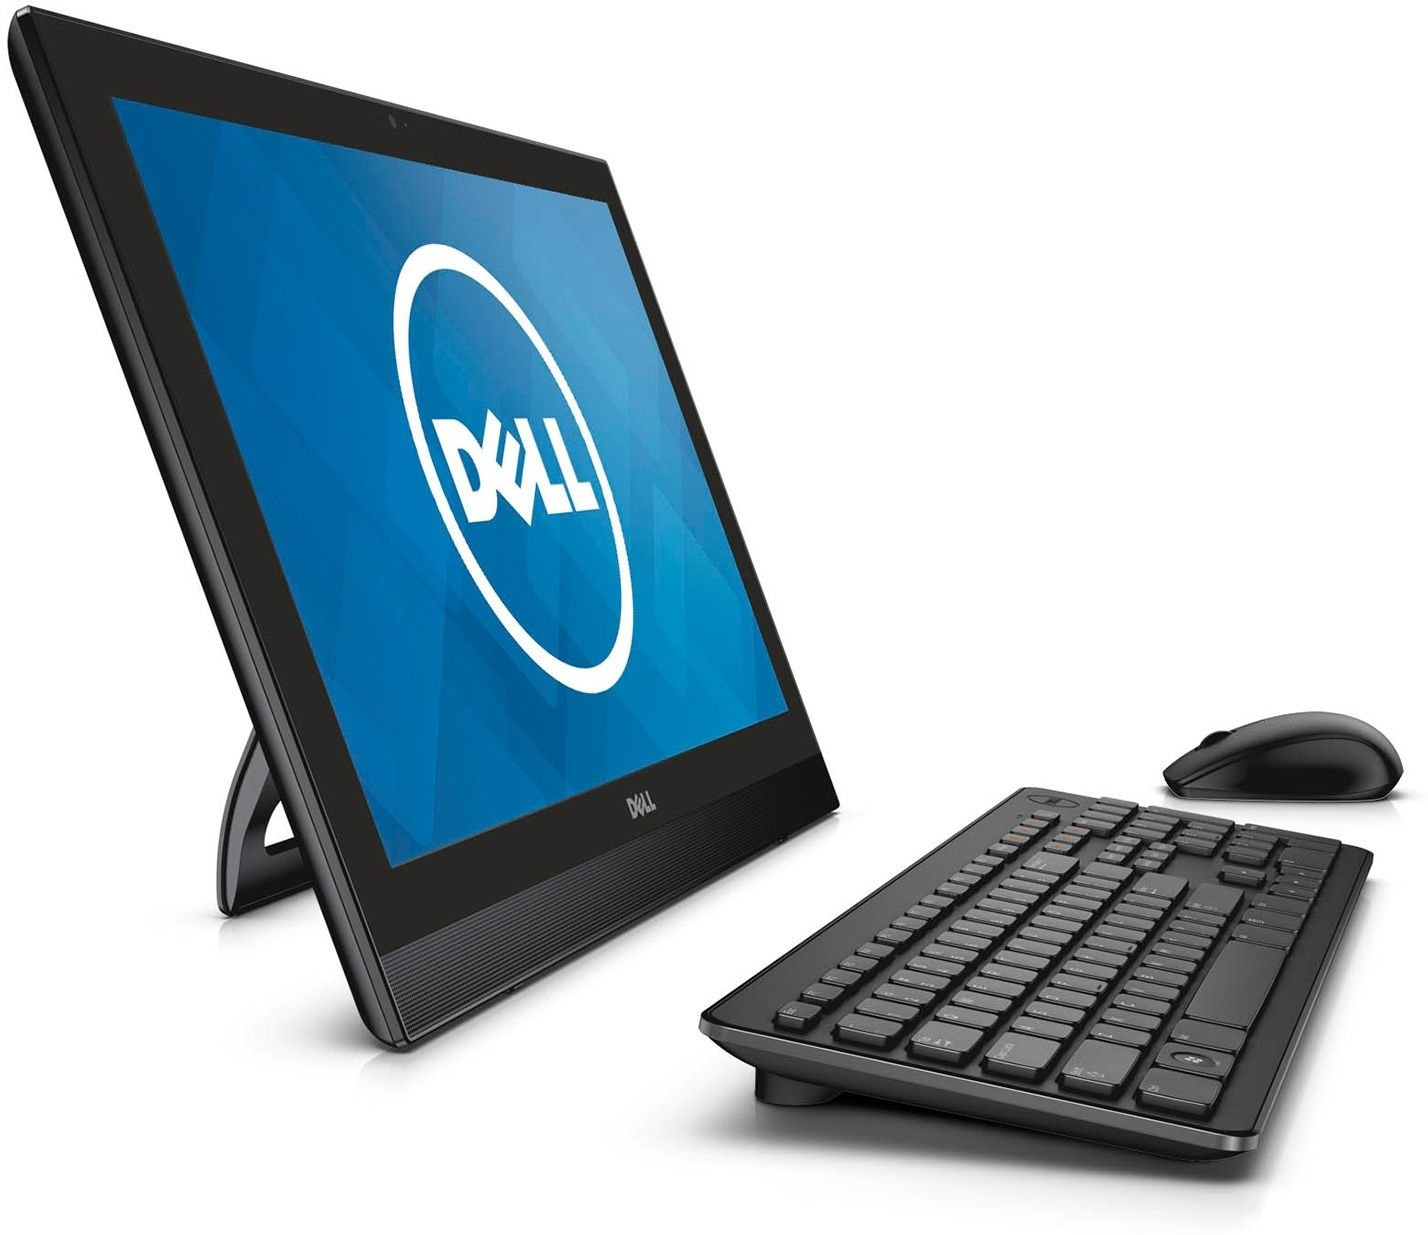 Swell Dell Desktop Computer Price In India Live Dell Branded Download Free Architecture Designs Osuribritishbridgeorg